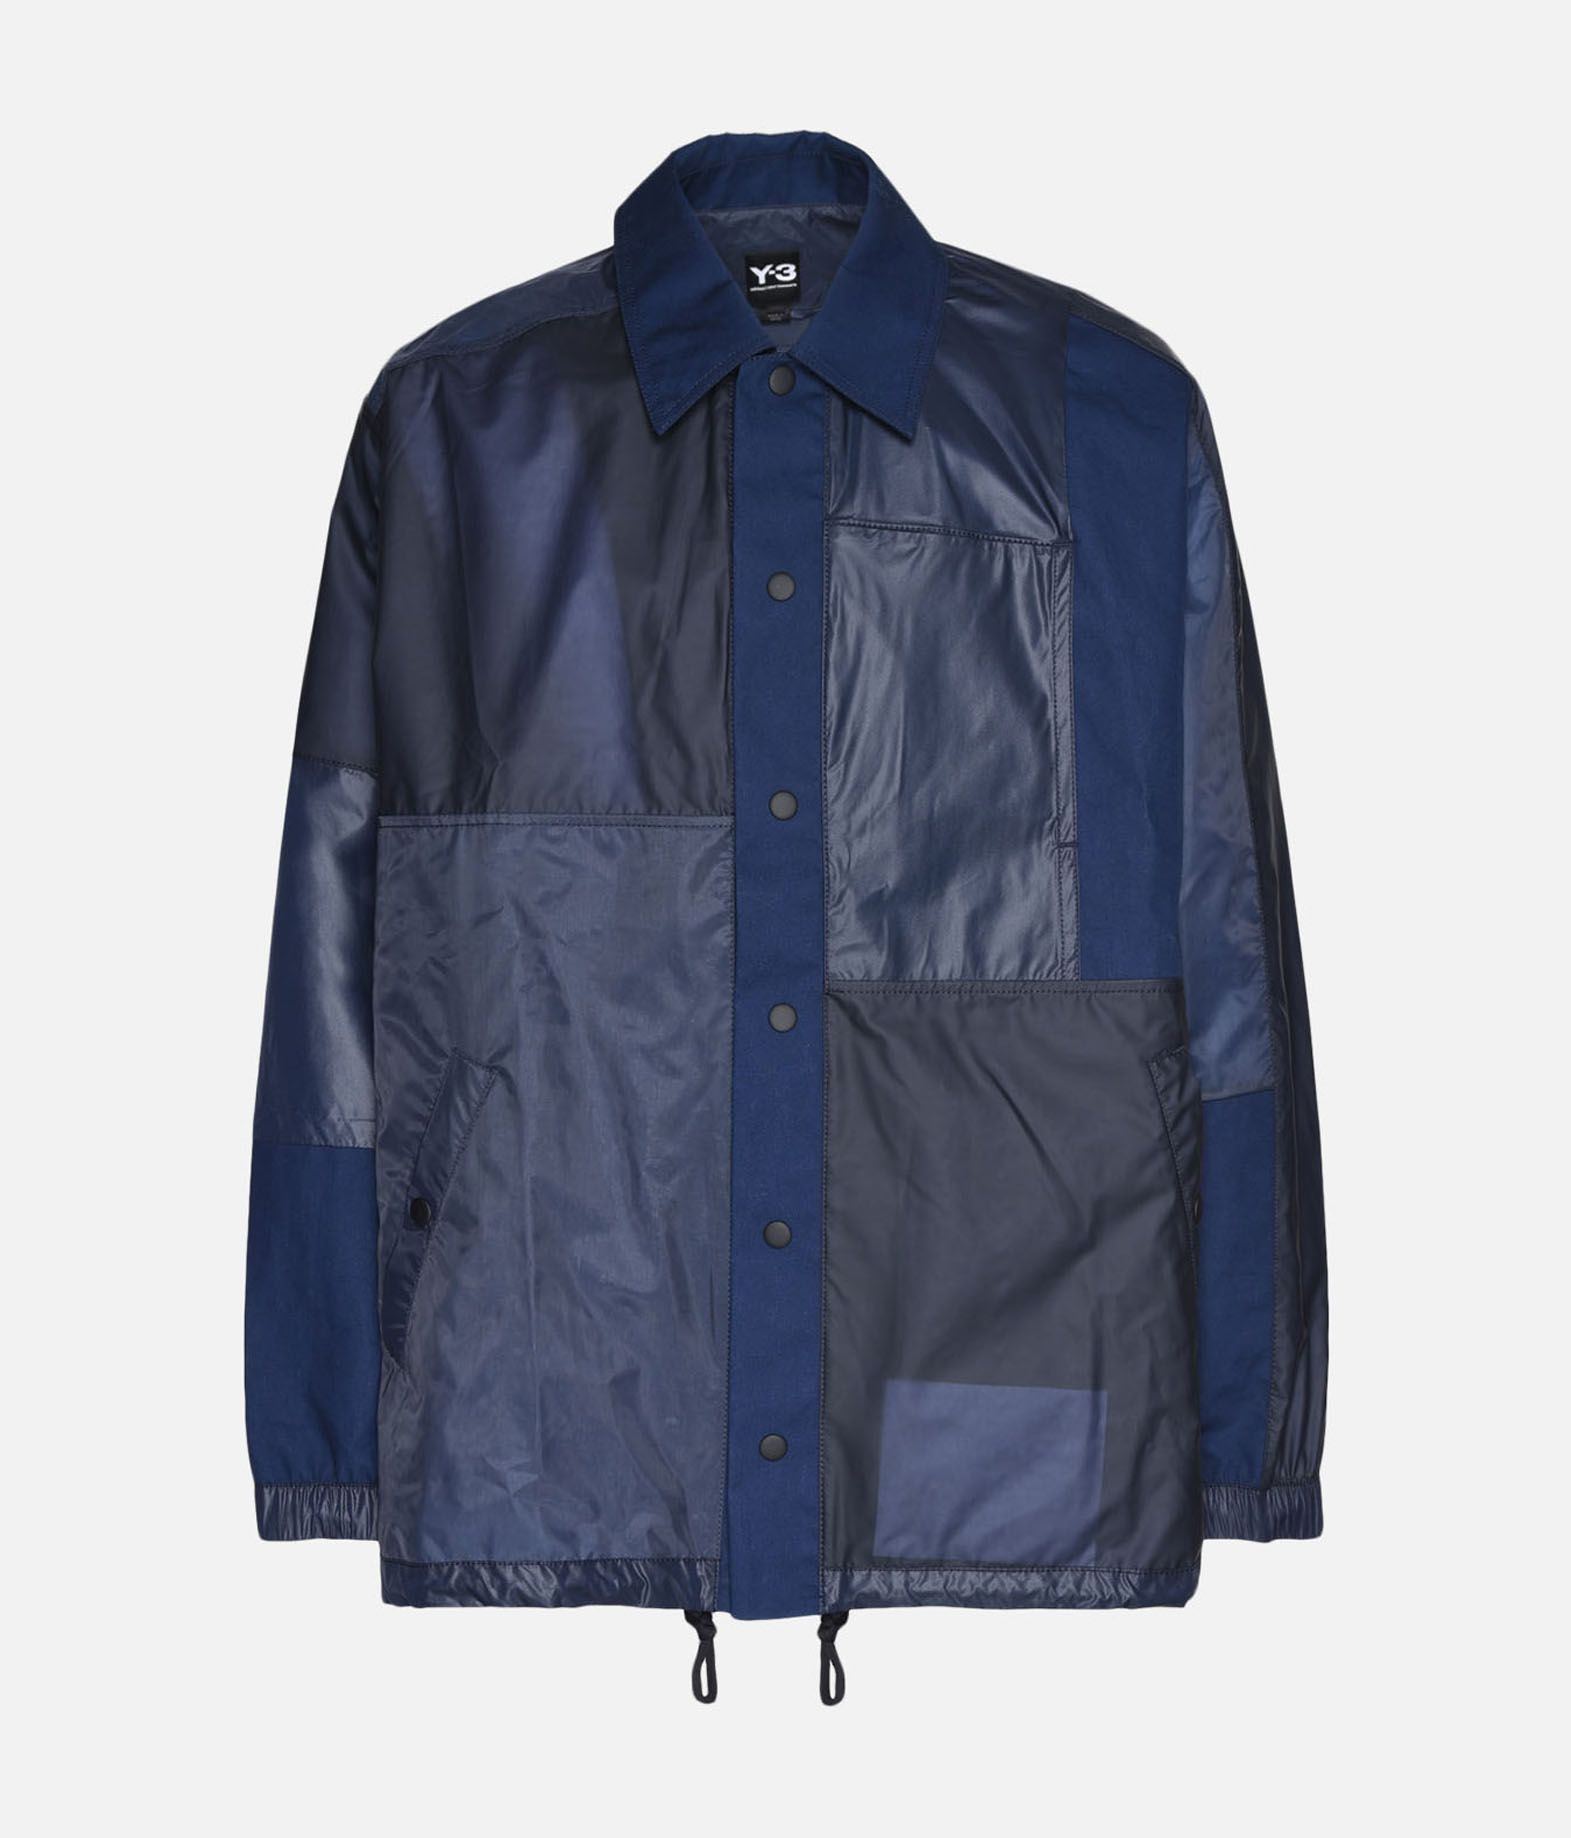 Y-3 Y-3 Patchwork Coach Jacket Jacket Man f